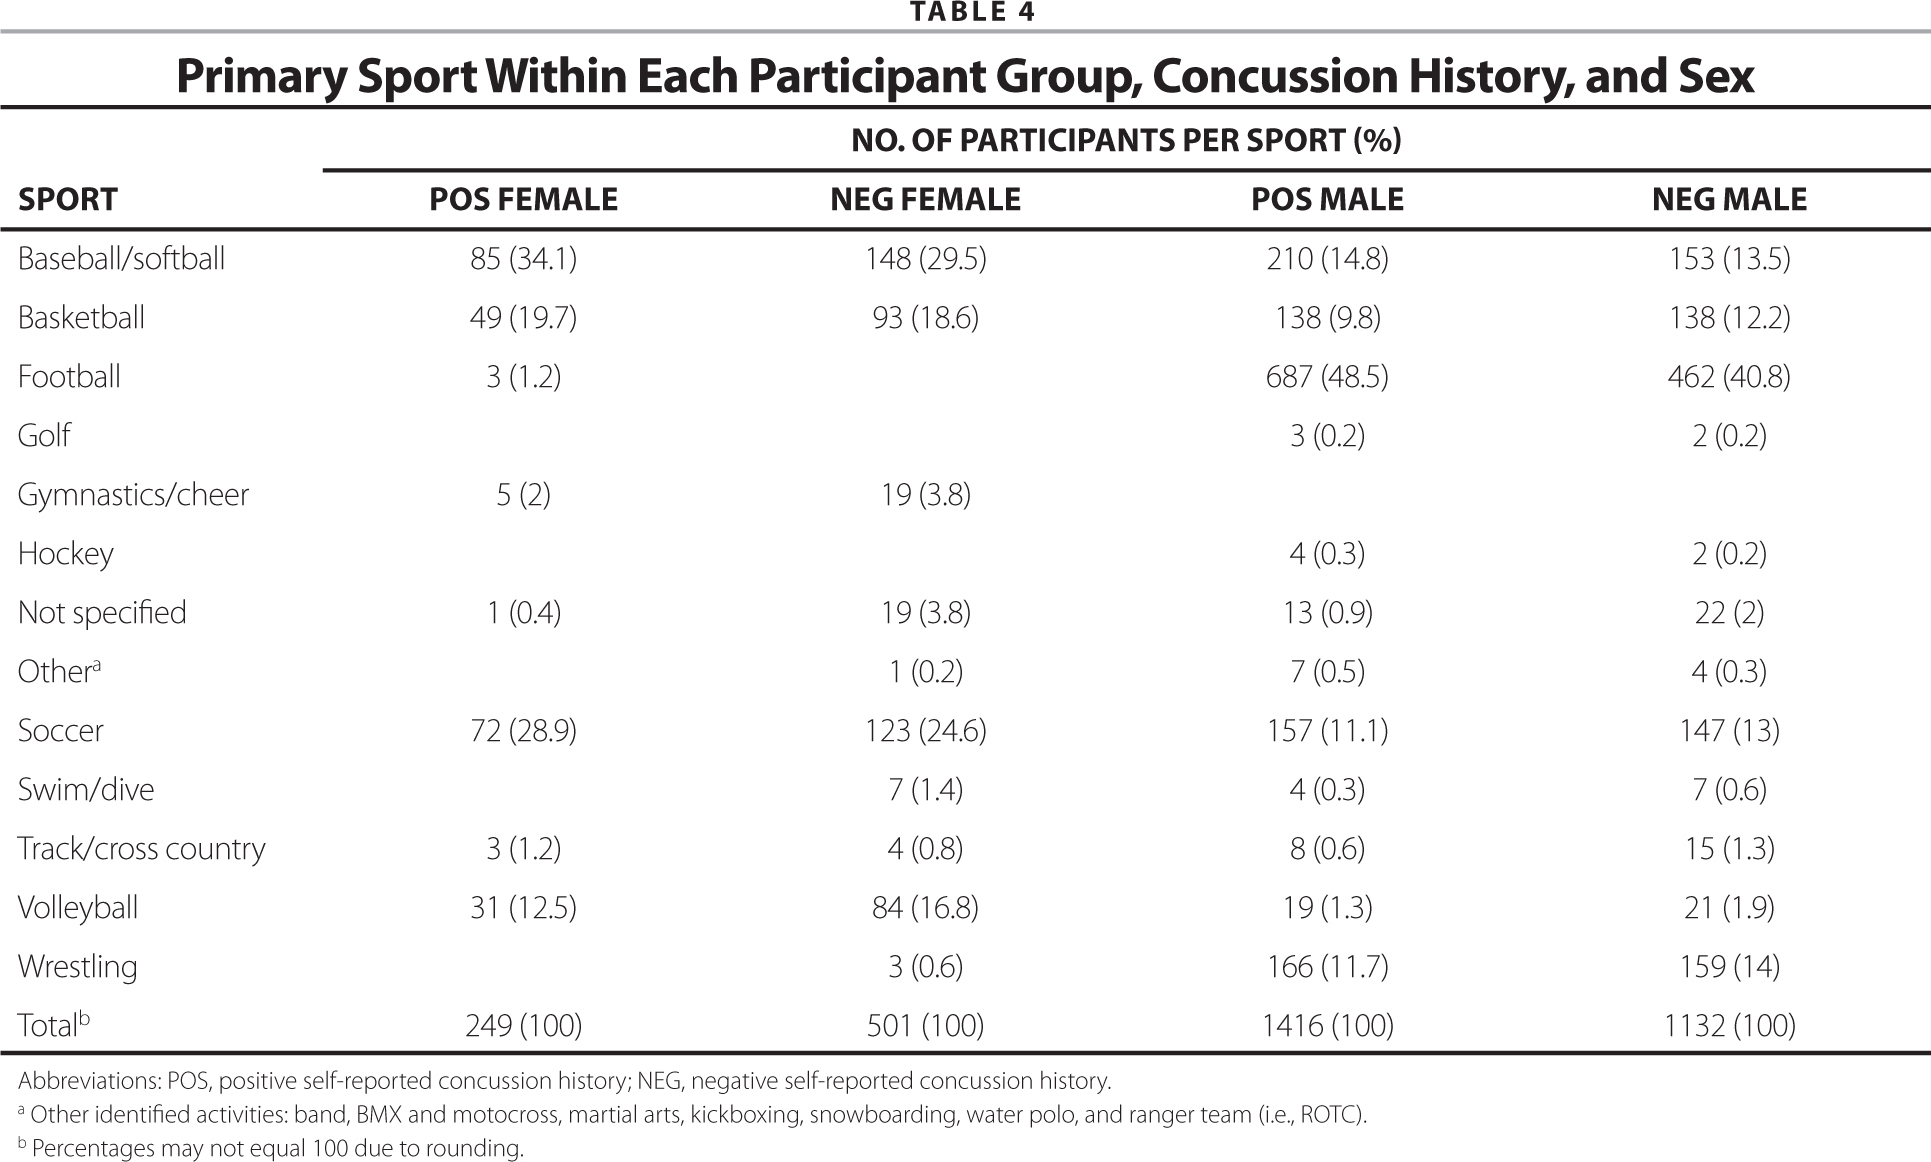 Primary Sport Within Each Participant Group, Concussion History, and Sex